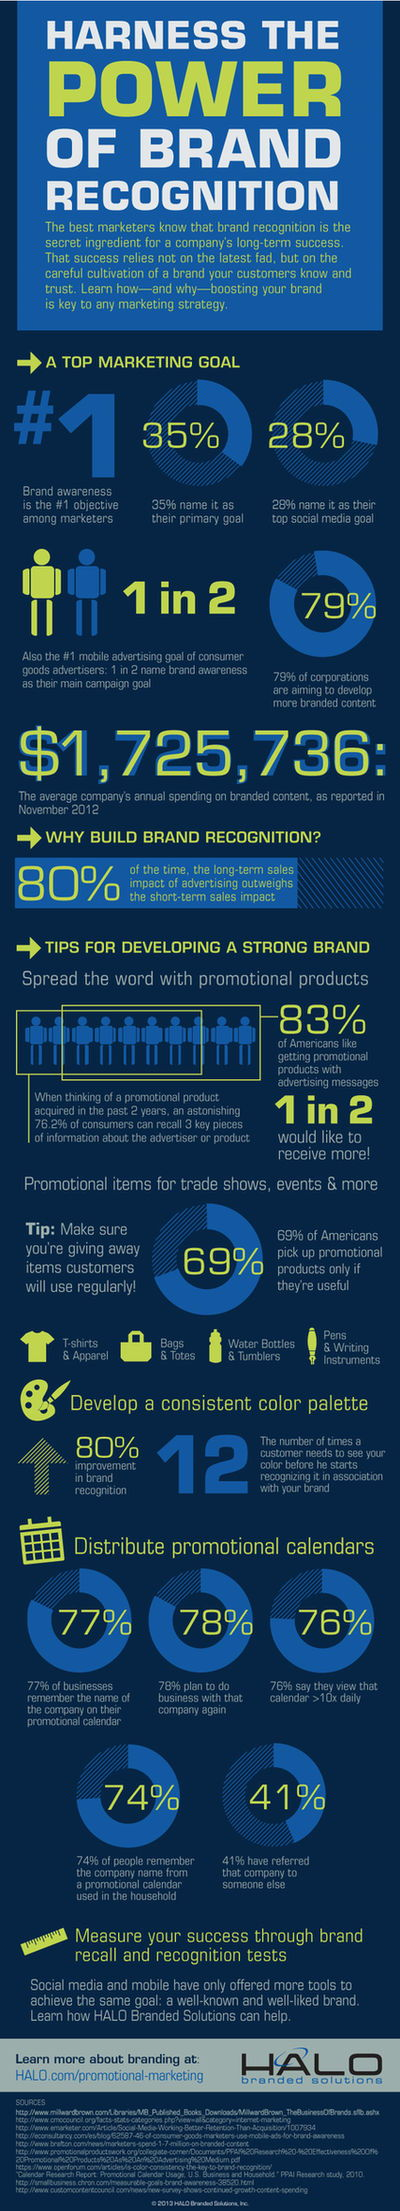 Infographic: Harness the Power of Brand Recognition